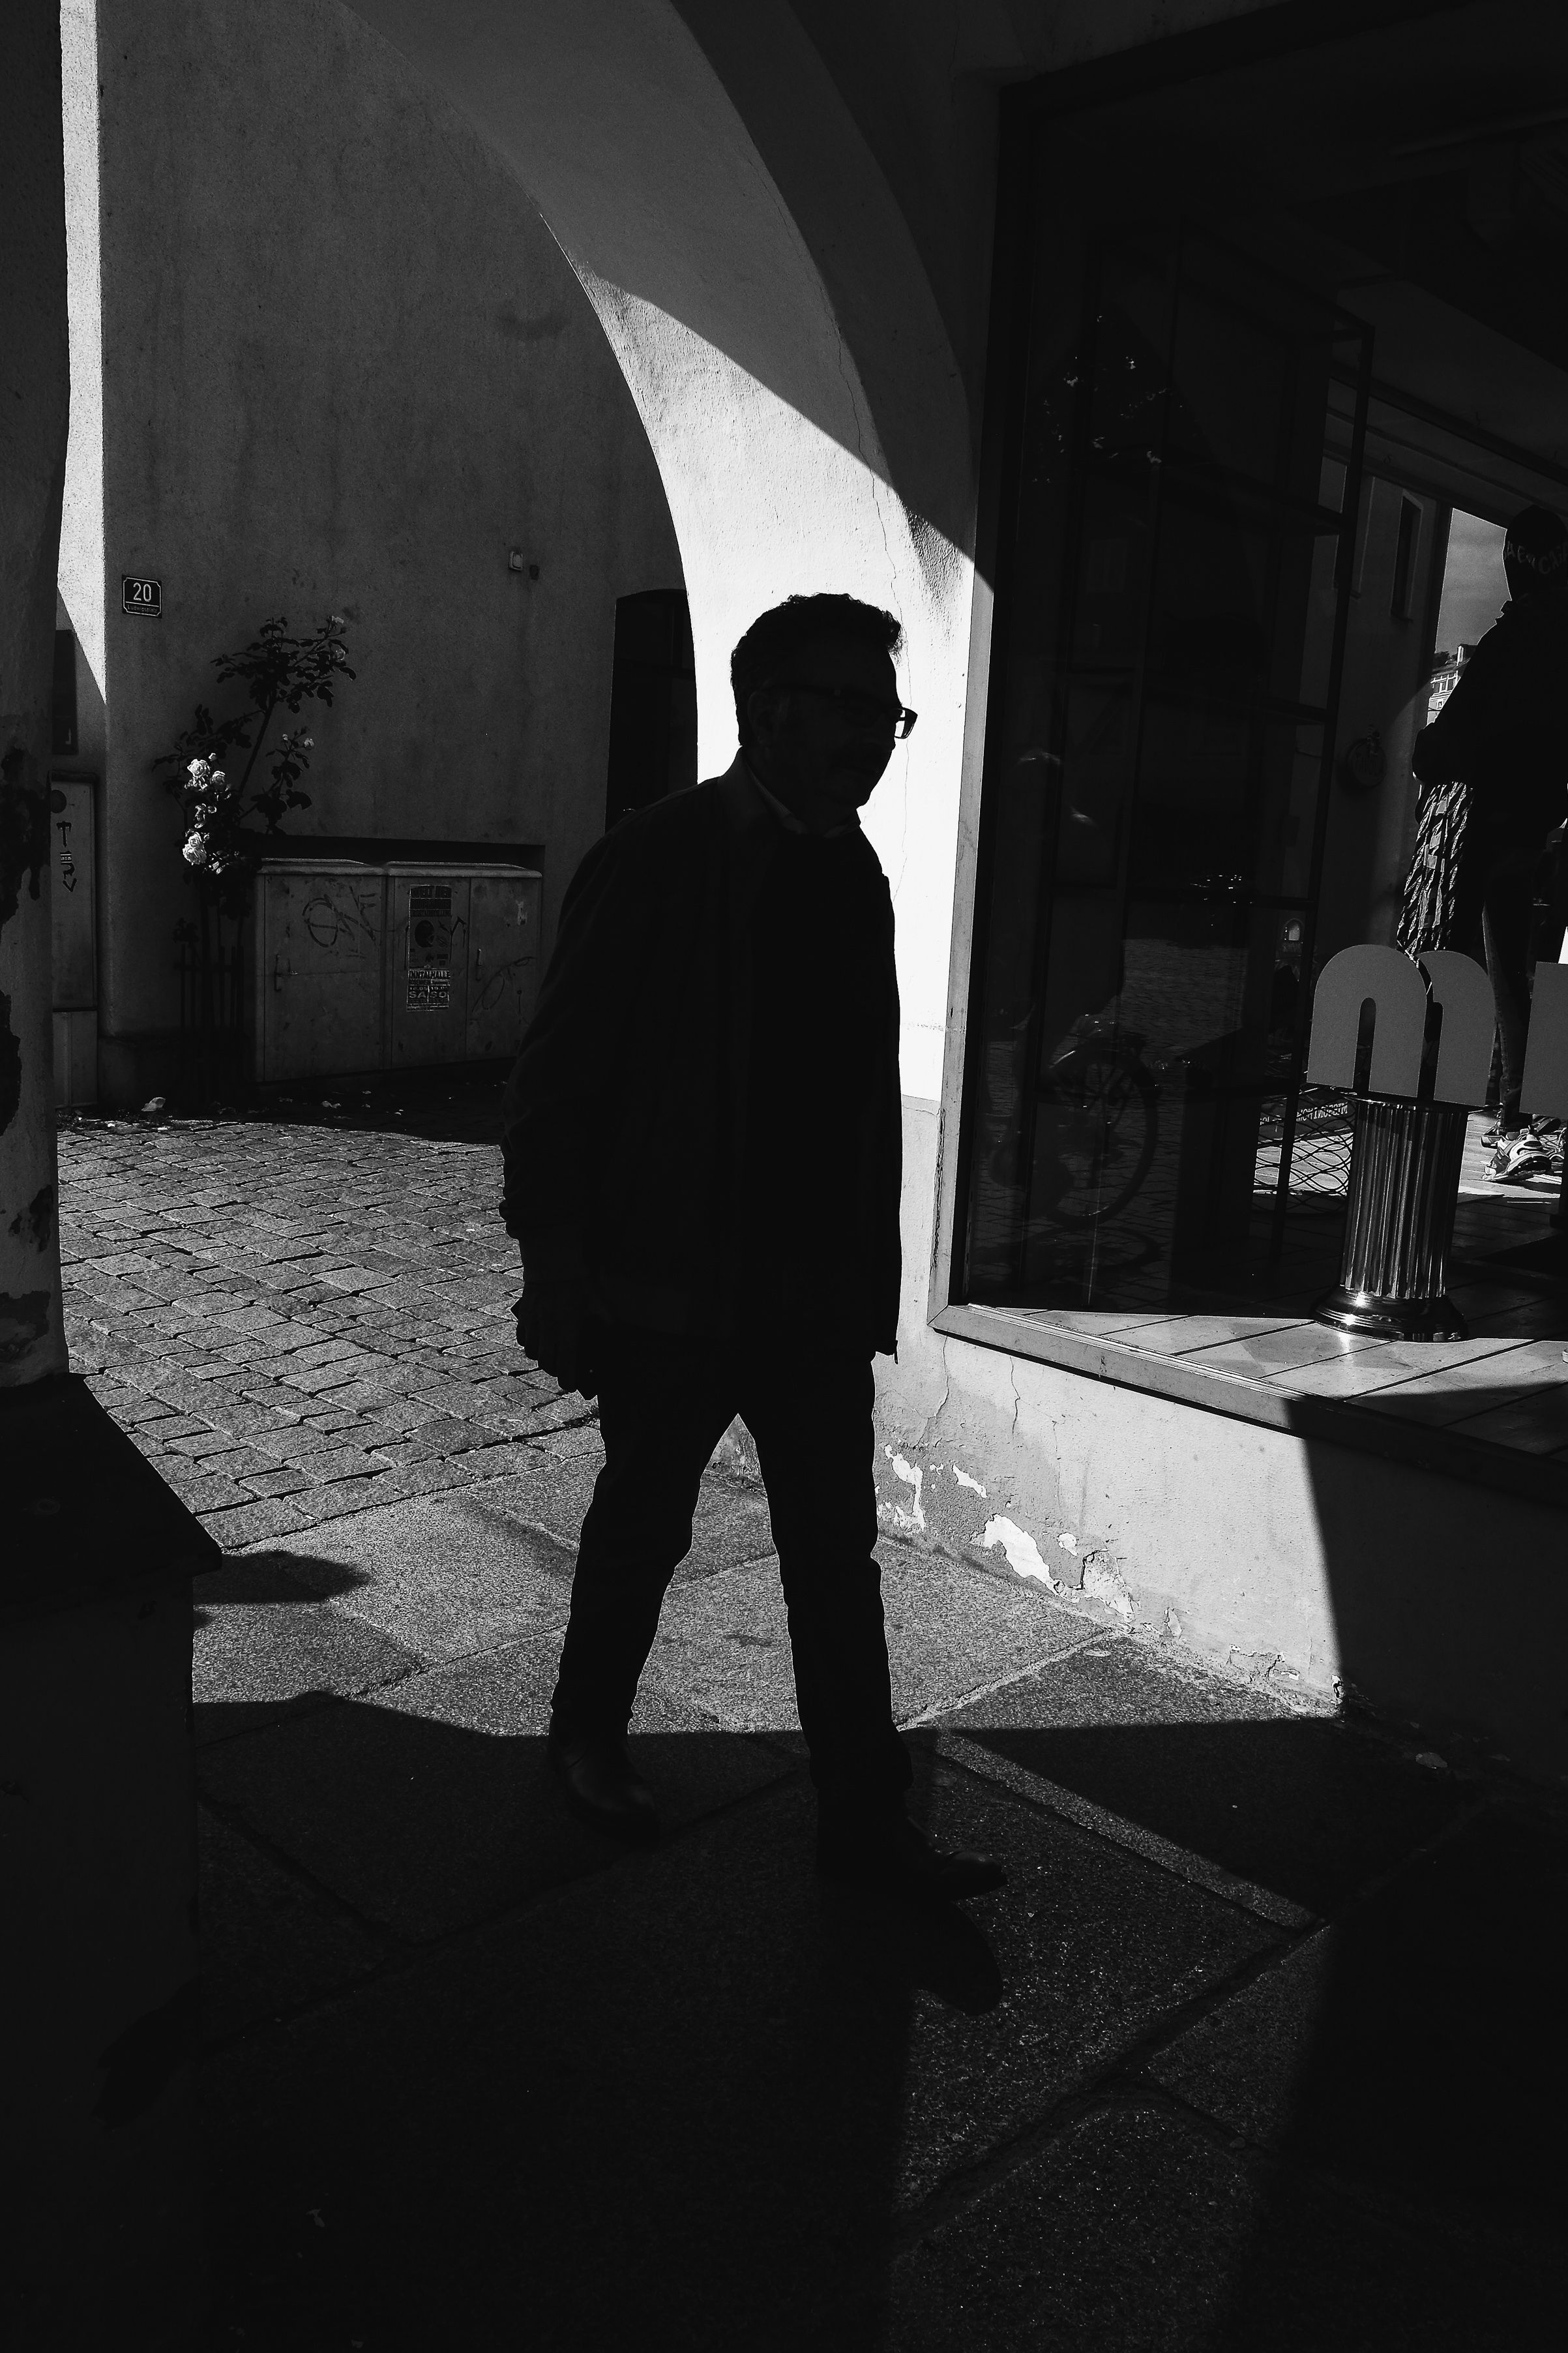 streetphotography photography